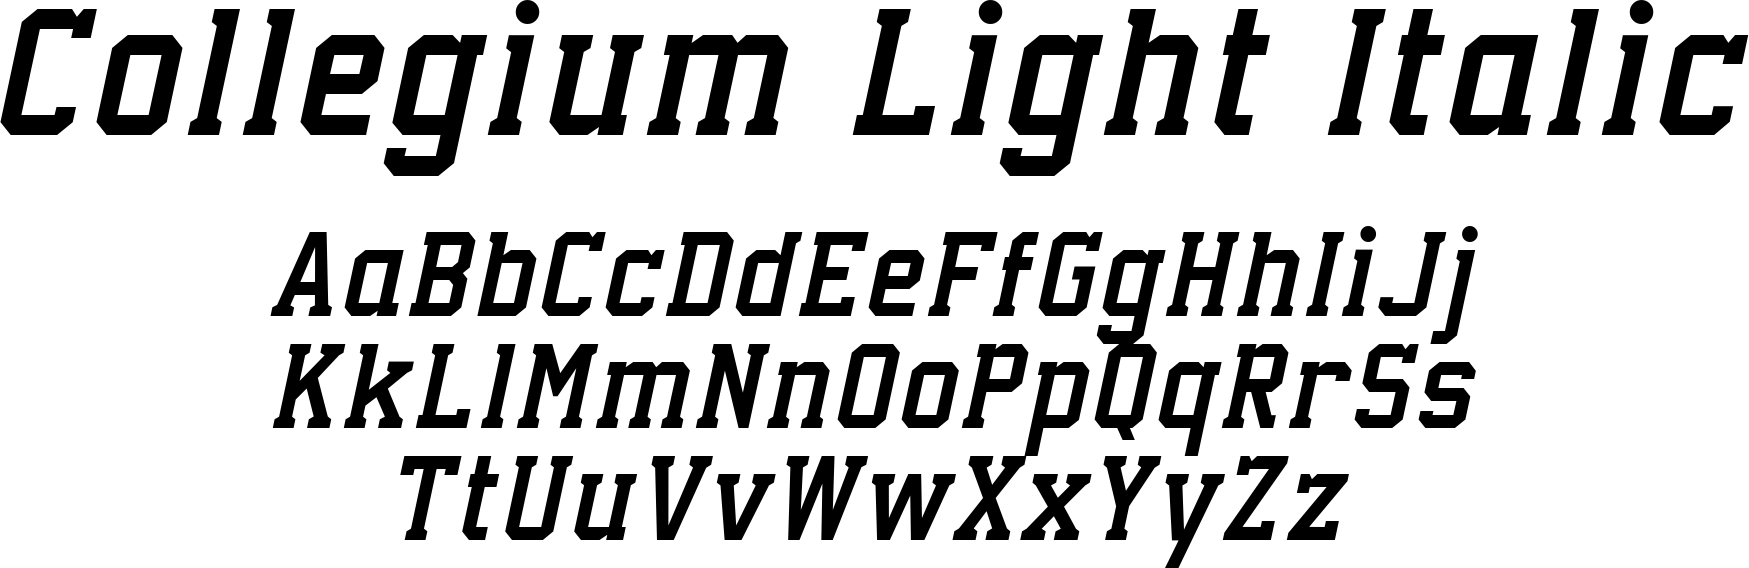 Collegium Light Italic